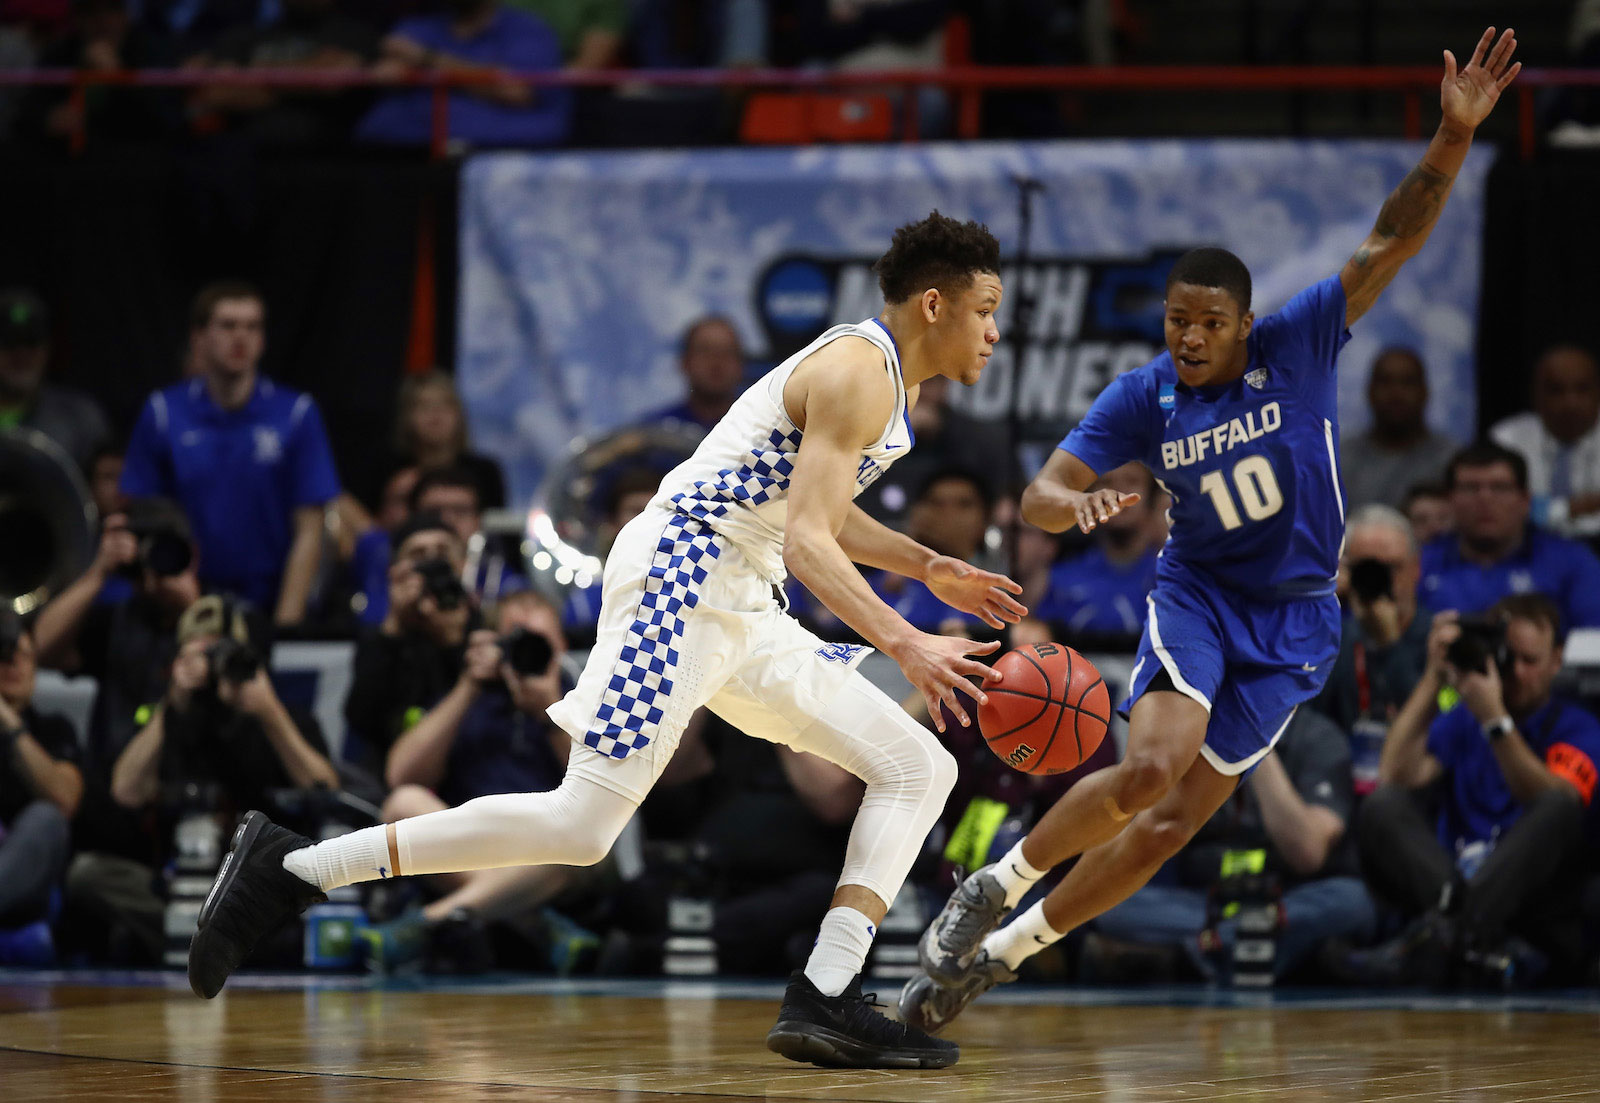 Kevin Knox #5 of the Kentucky Wildcats dribbles against Wes Clark #10 of the Buffalo Bulls during the second half in the second round of the 2018 NCAA Men's Basketball Tournament at Taco Bell Arena on March 17, 2018 in Boise, Idaho.